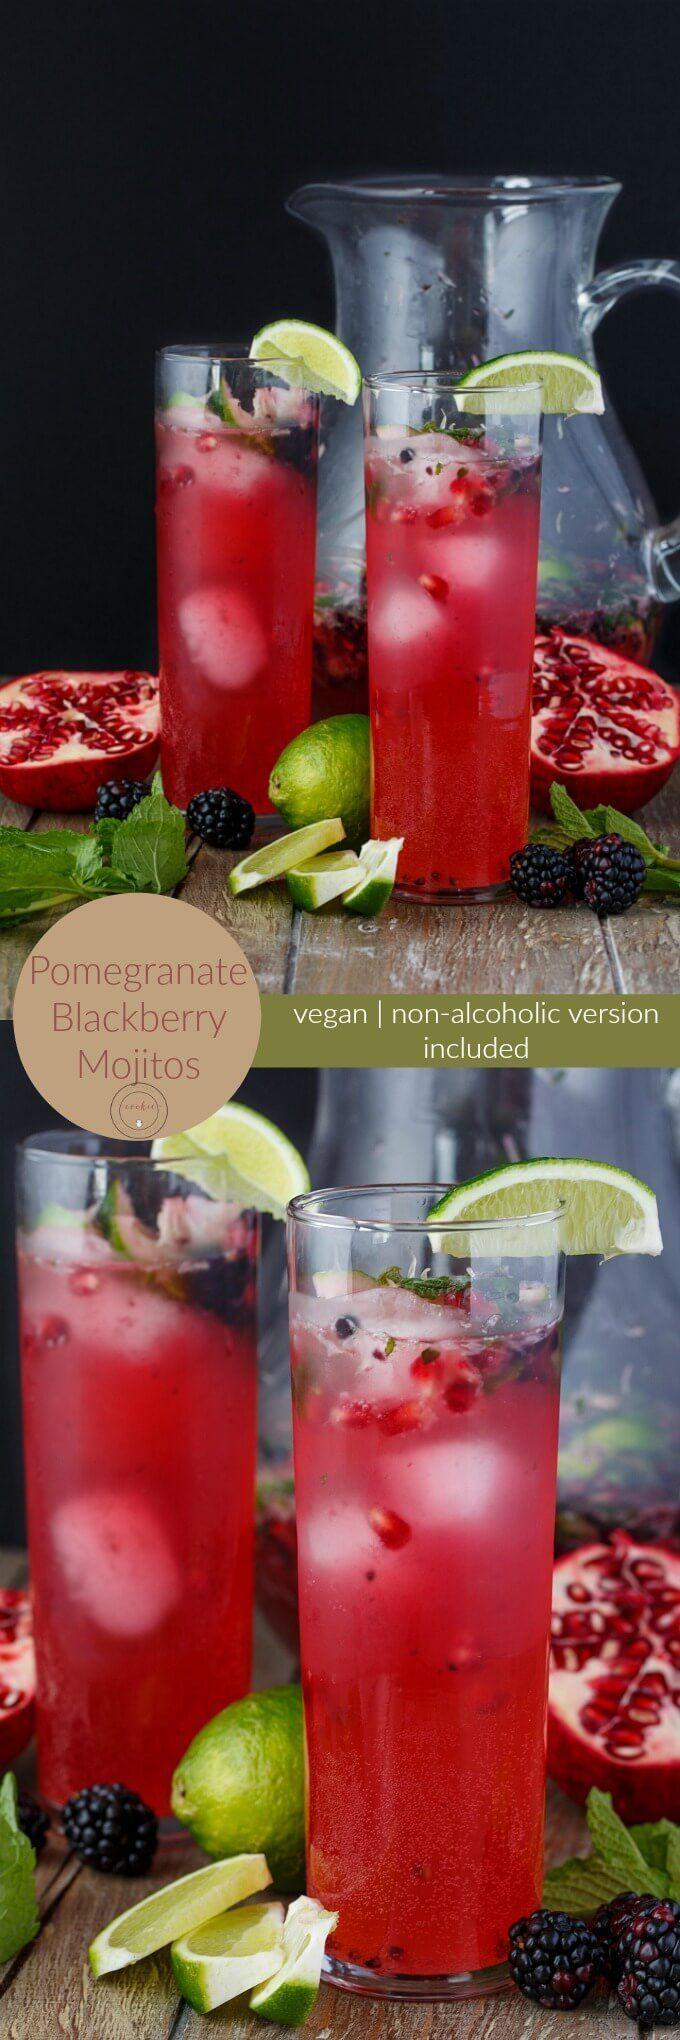 زفاف - Pomegranate Blackberry Mojitos